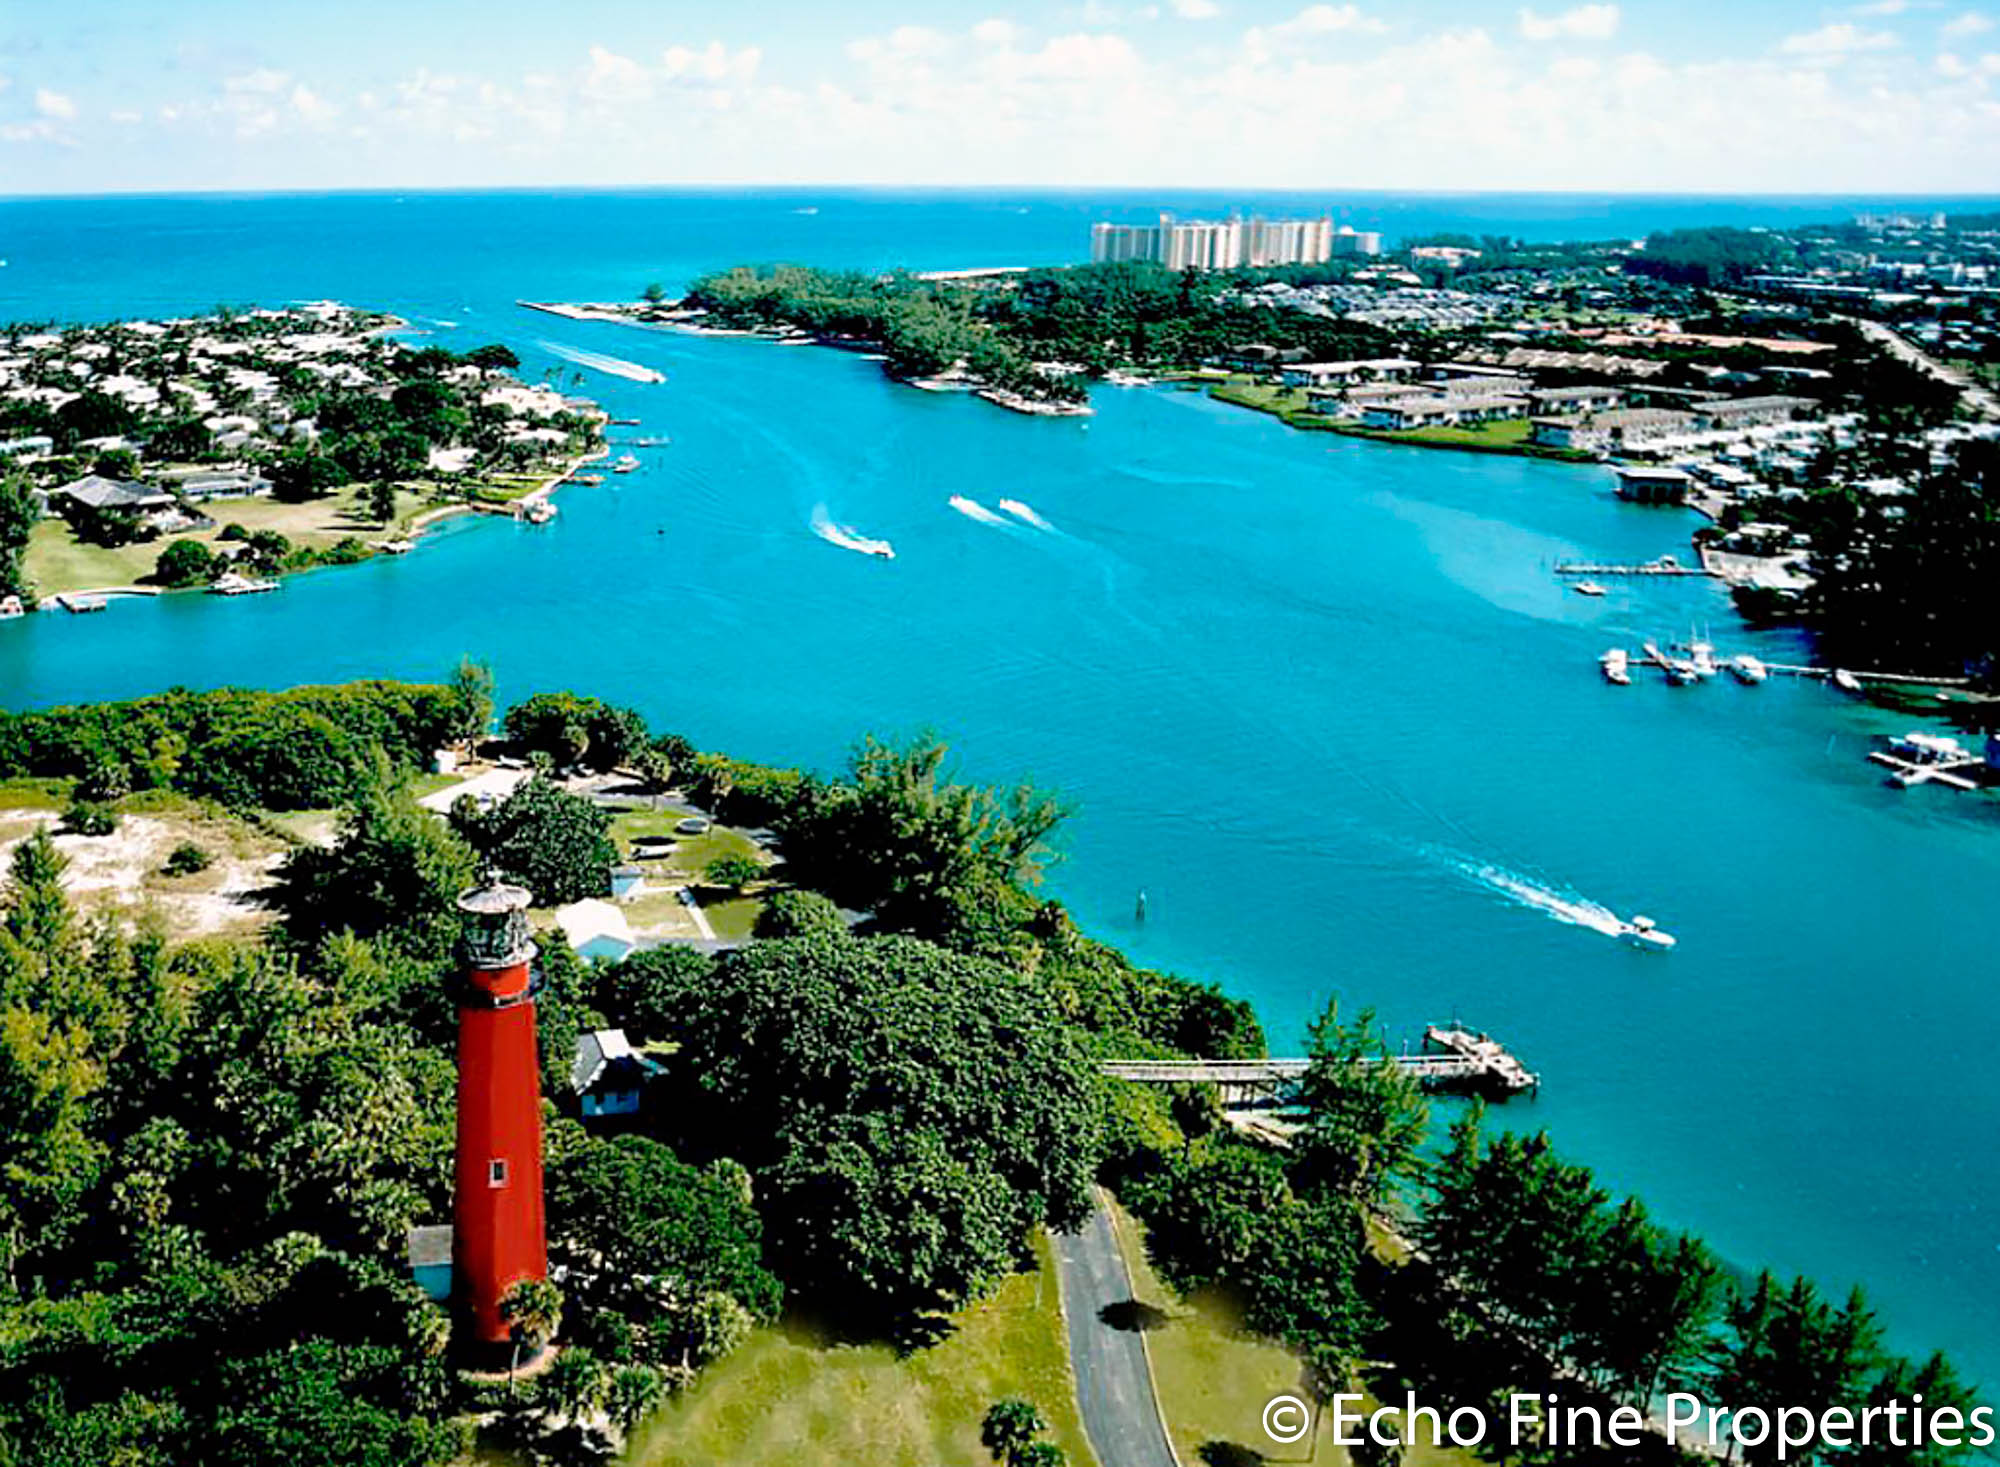 Echo Fine Properties' Complete Guide to Buying a Jupiter Island Condo